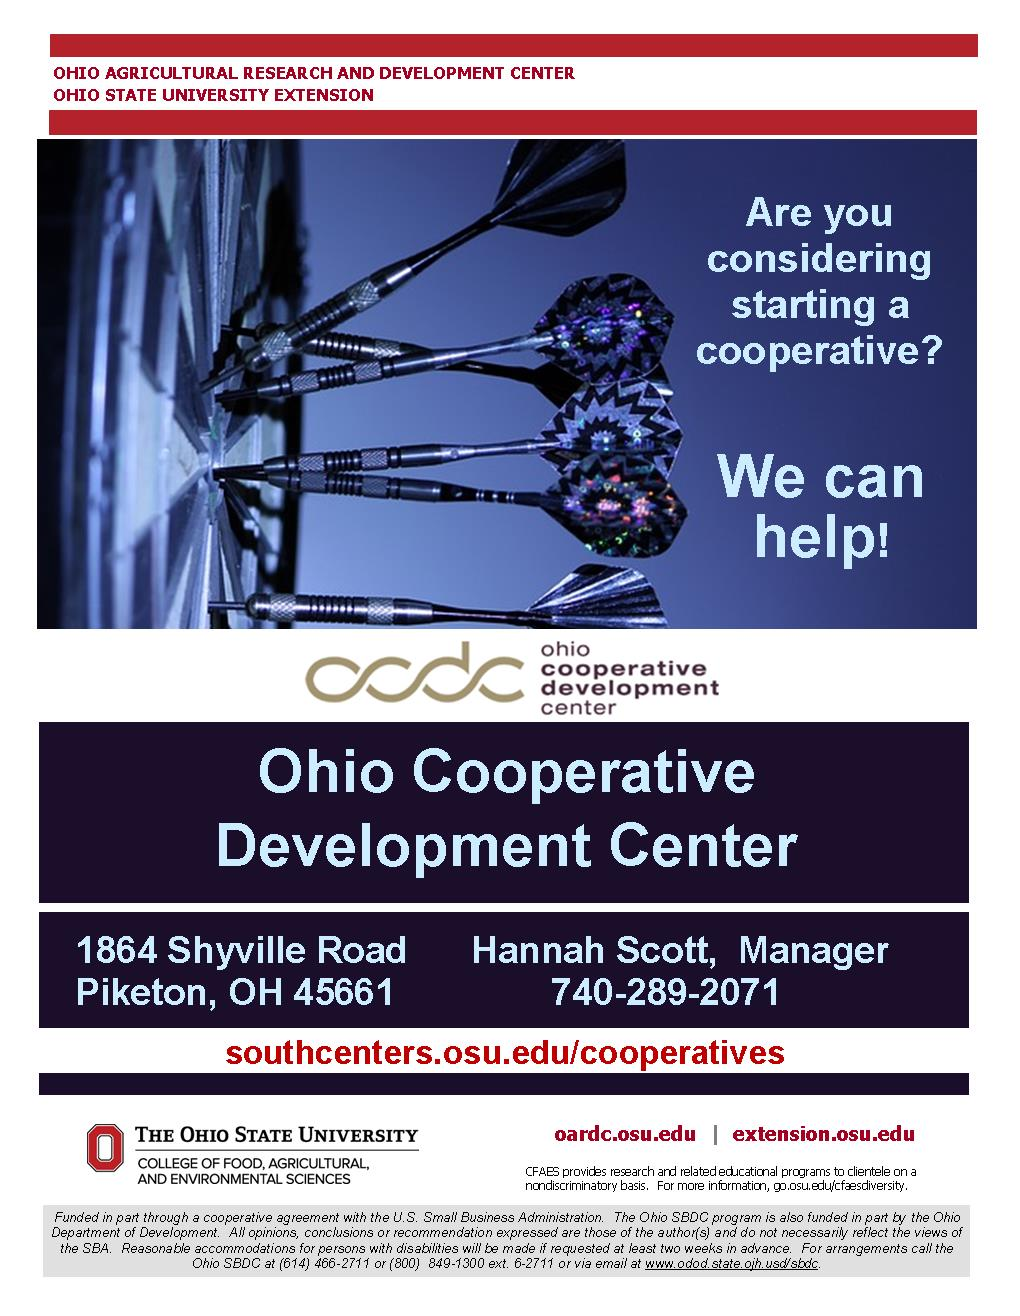 Ohio Cooperative Development Center